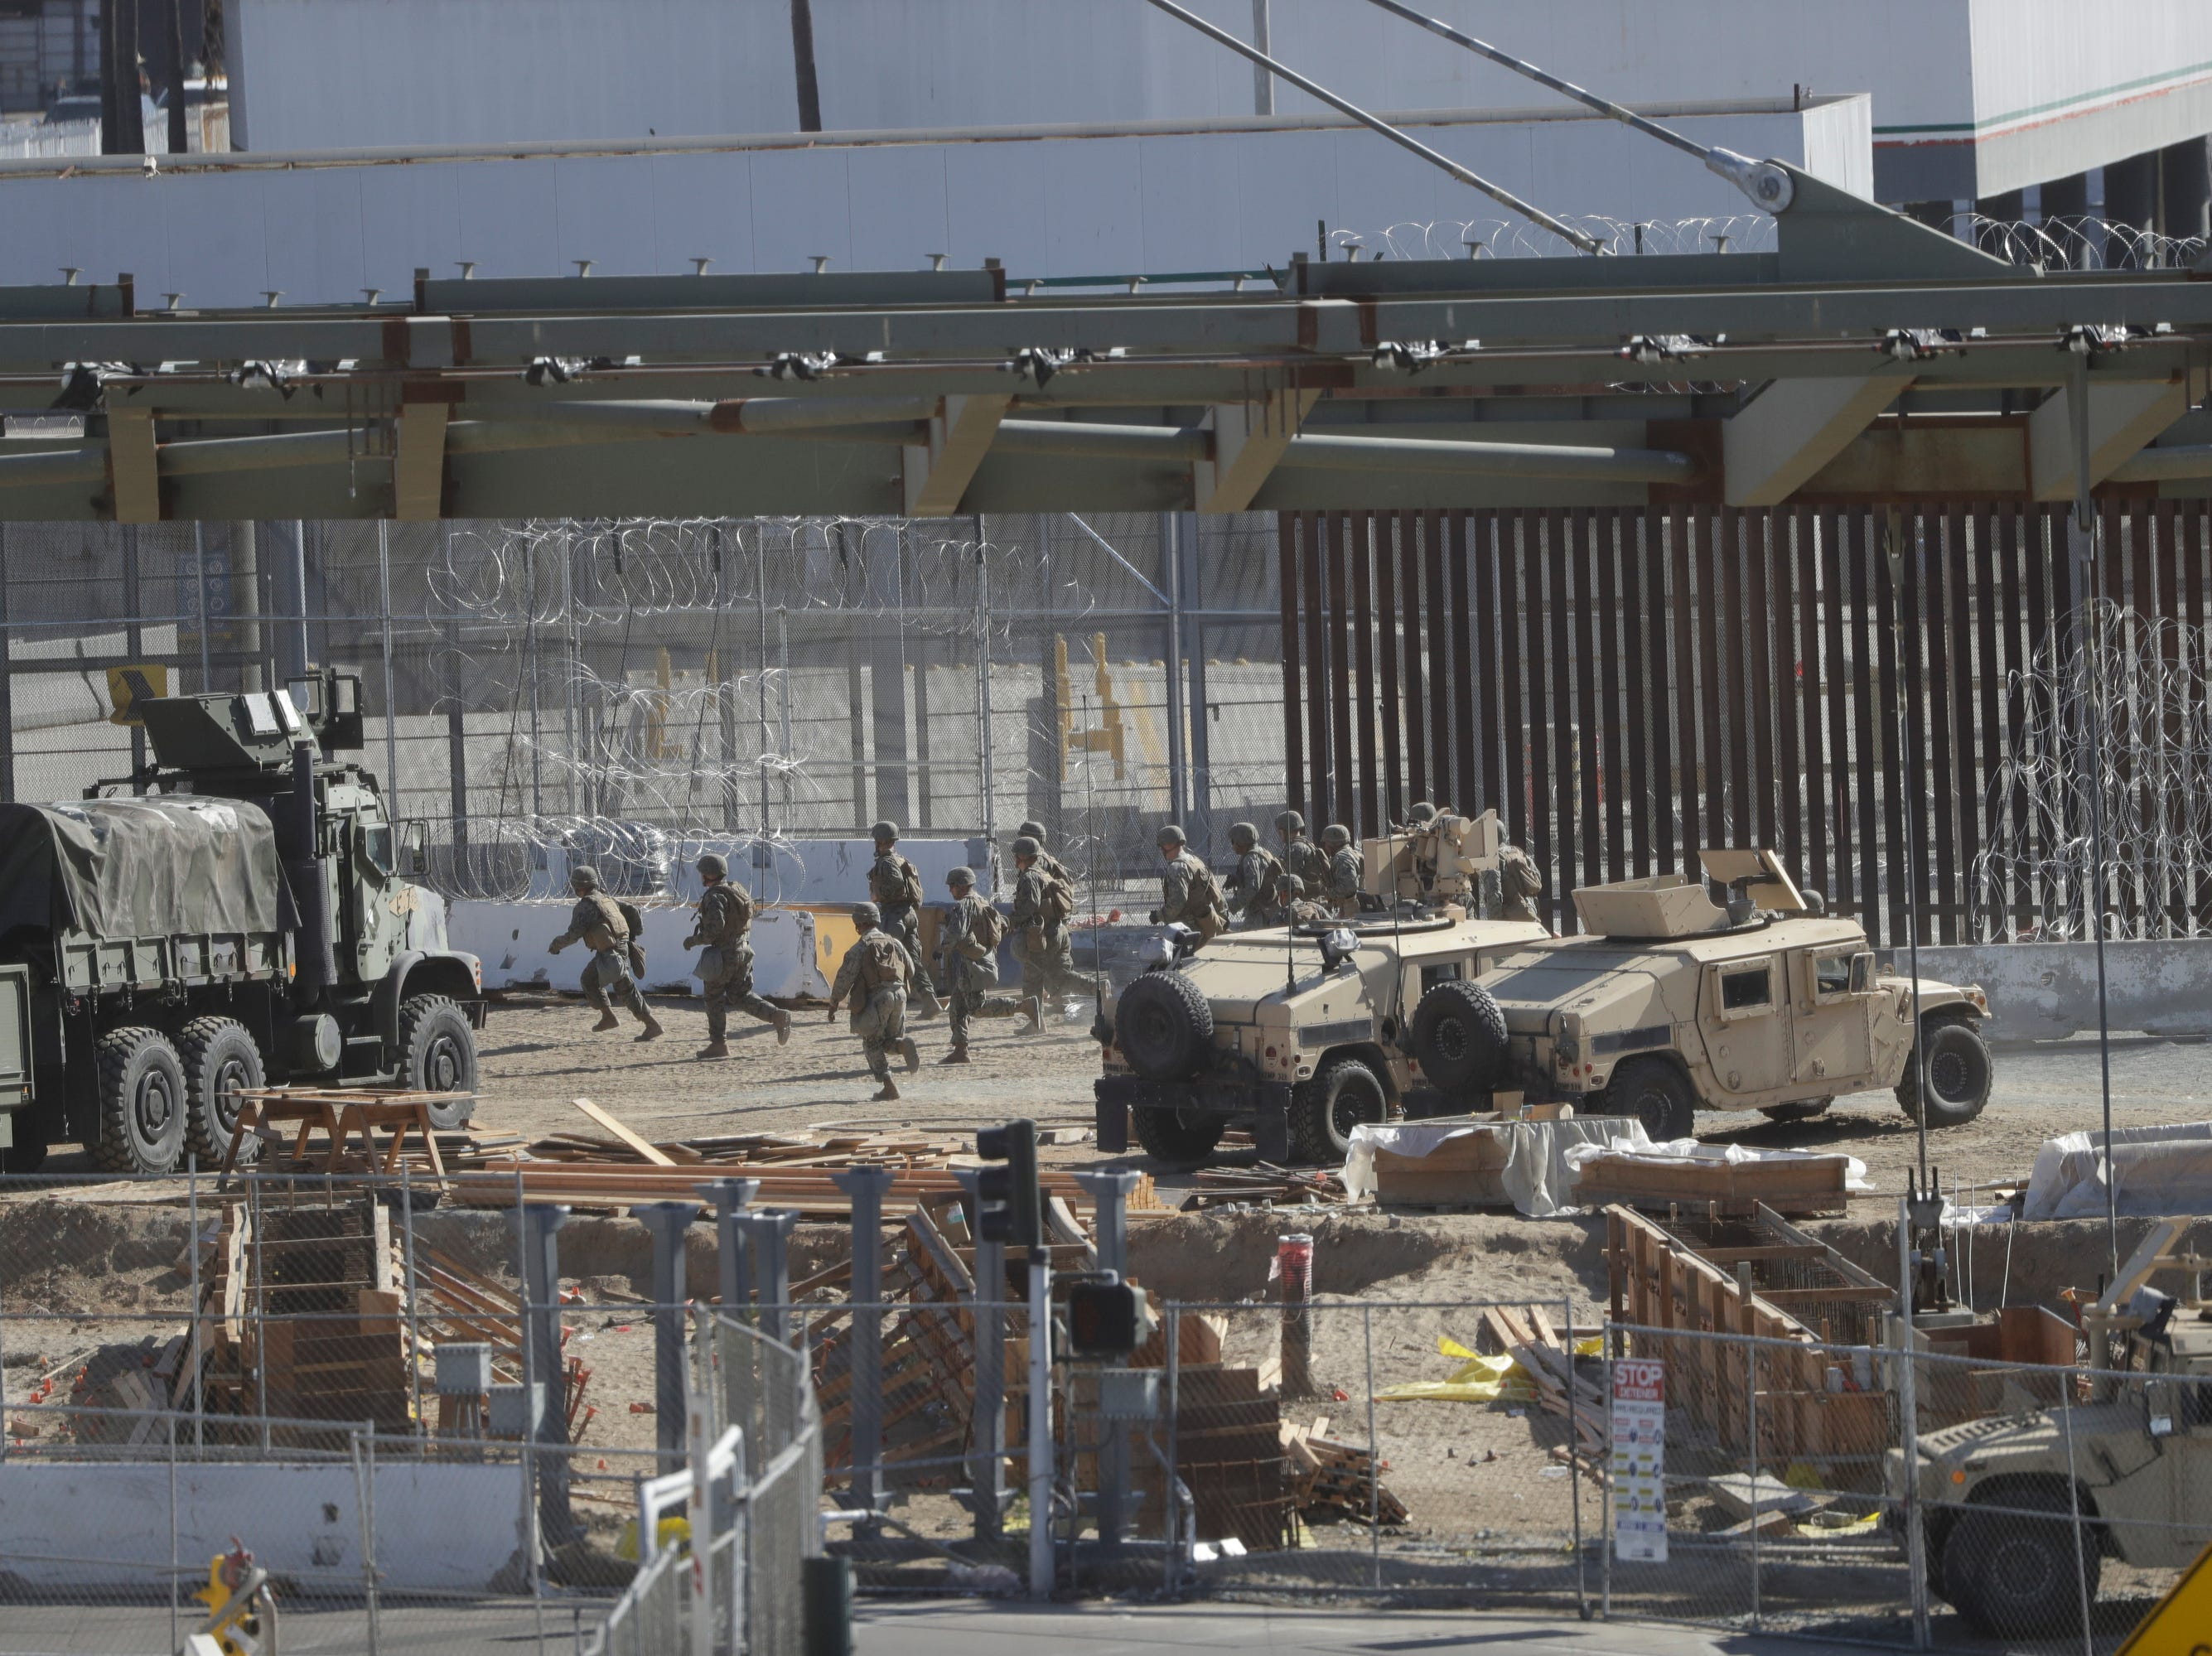 U.S. military personnel deploy at the San Ysidro port of entry in San Diego on Nov. 25, 2018. The Border Patrol office in San Diego said via Twitter that pedestrian crossings have been suspended at the San Ysidro port of entry at both the East and West facilities. All northbound and southbound traffic was halted.